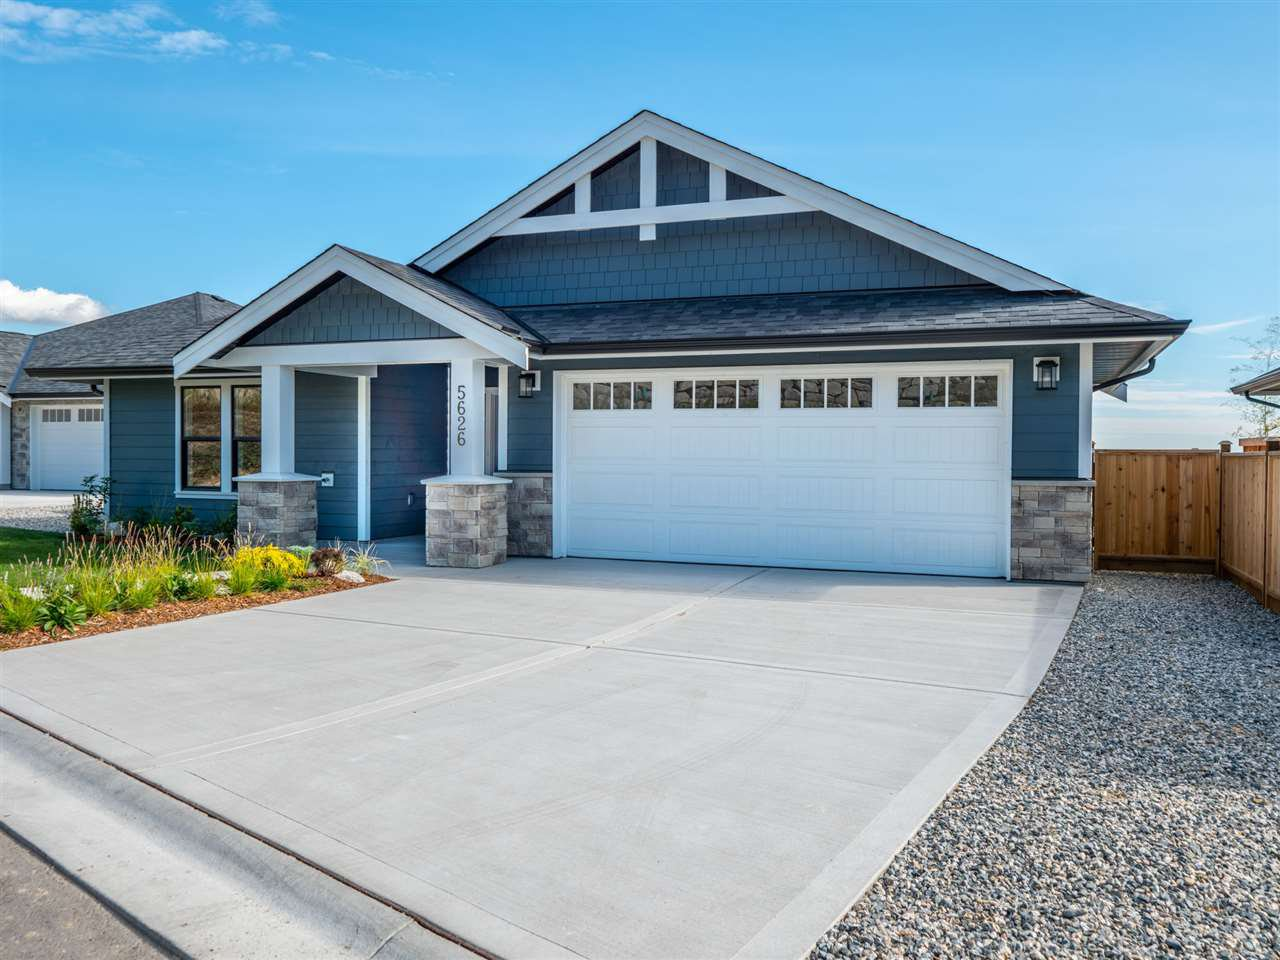 """Main Photo: 5668 DERBY Road in Sechelt: Sechelt District House for sale in """"SilverStone Heights Phase2"""" (Sunshine Coast)  : MLS®# R2524627"""